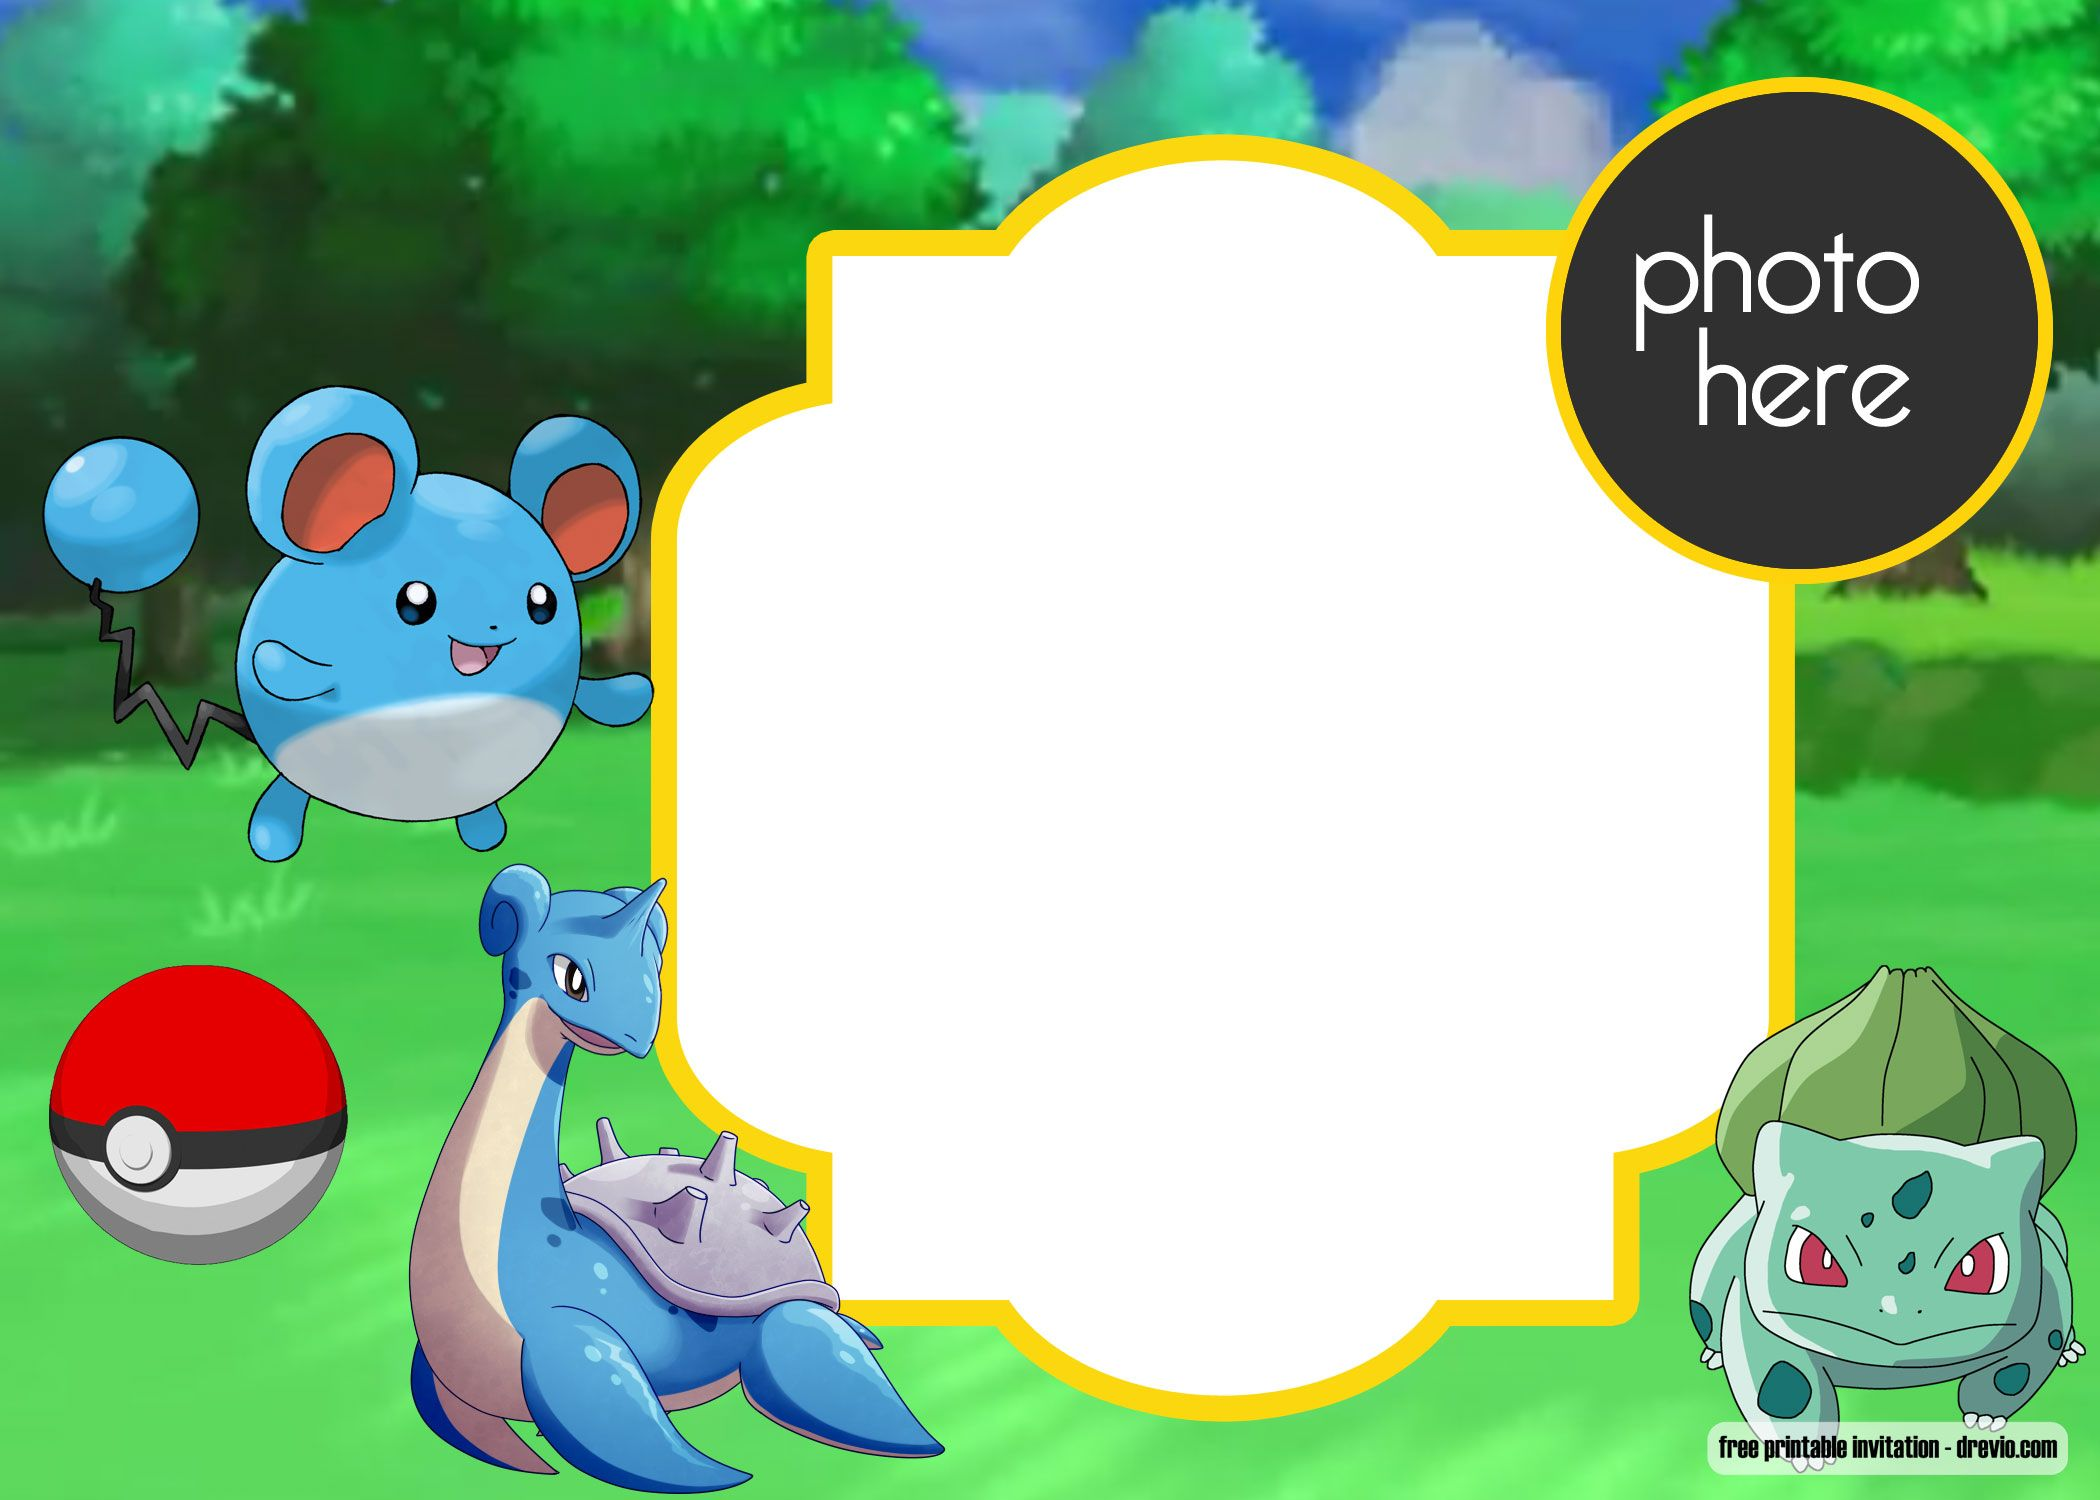 photograph about Printable Pokemon Birthday Invitations named No cost Printable Pokemon Birthday Invitation Free of charge